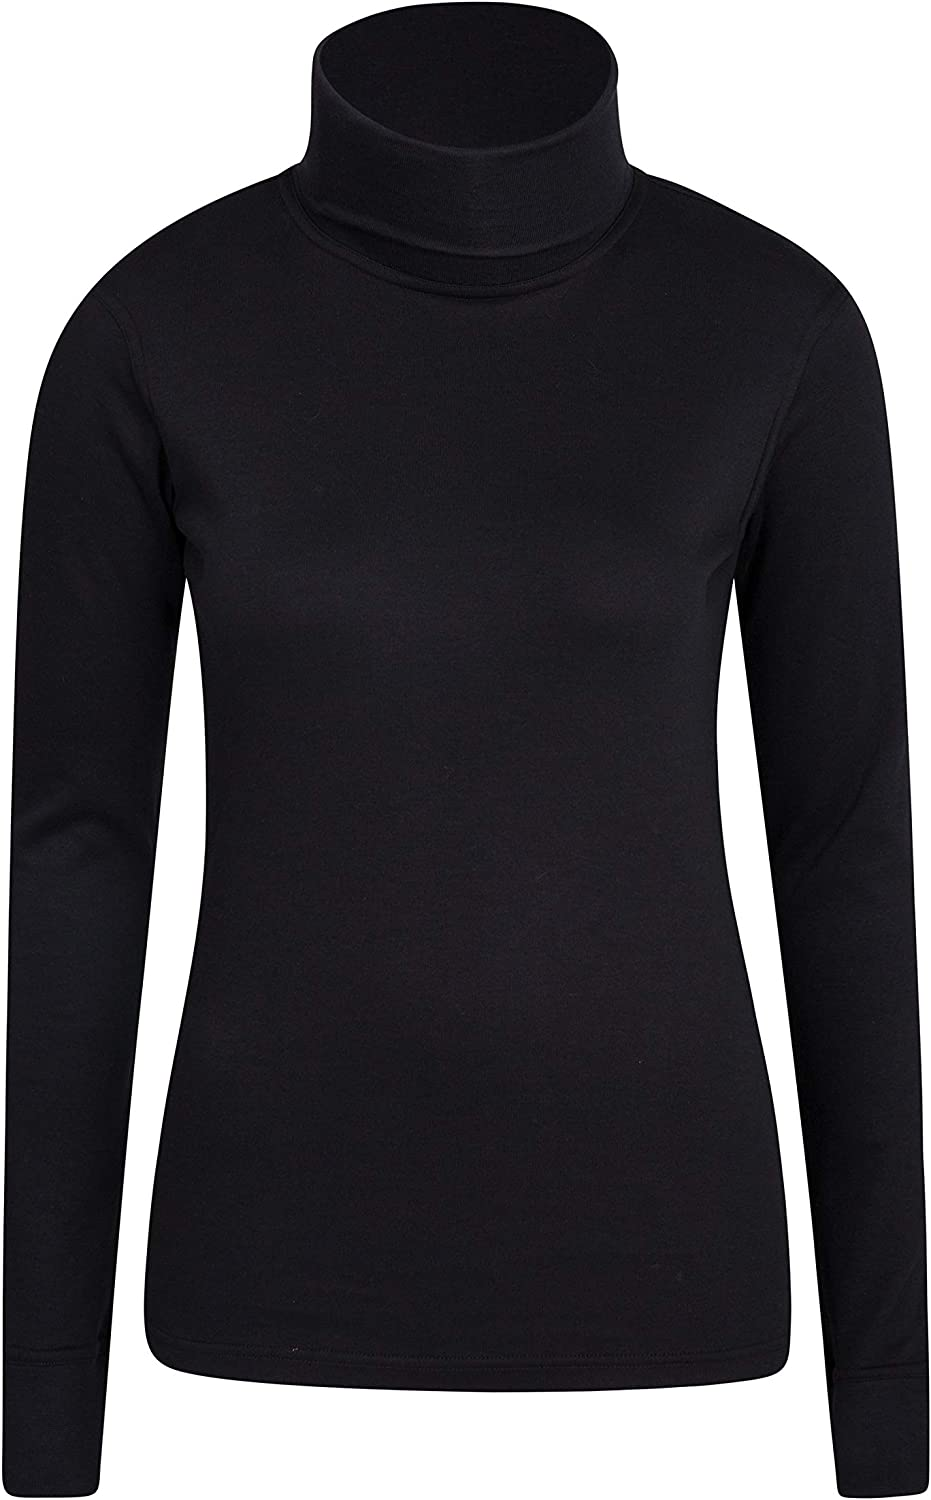 Lightweight Quick Drying with Fitted Sleeves Mountain Warehouse Meribel Womens Roll Neck Top Ideal for Winter Breathable 100/% Combed Cotton Thermal Baselayer